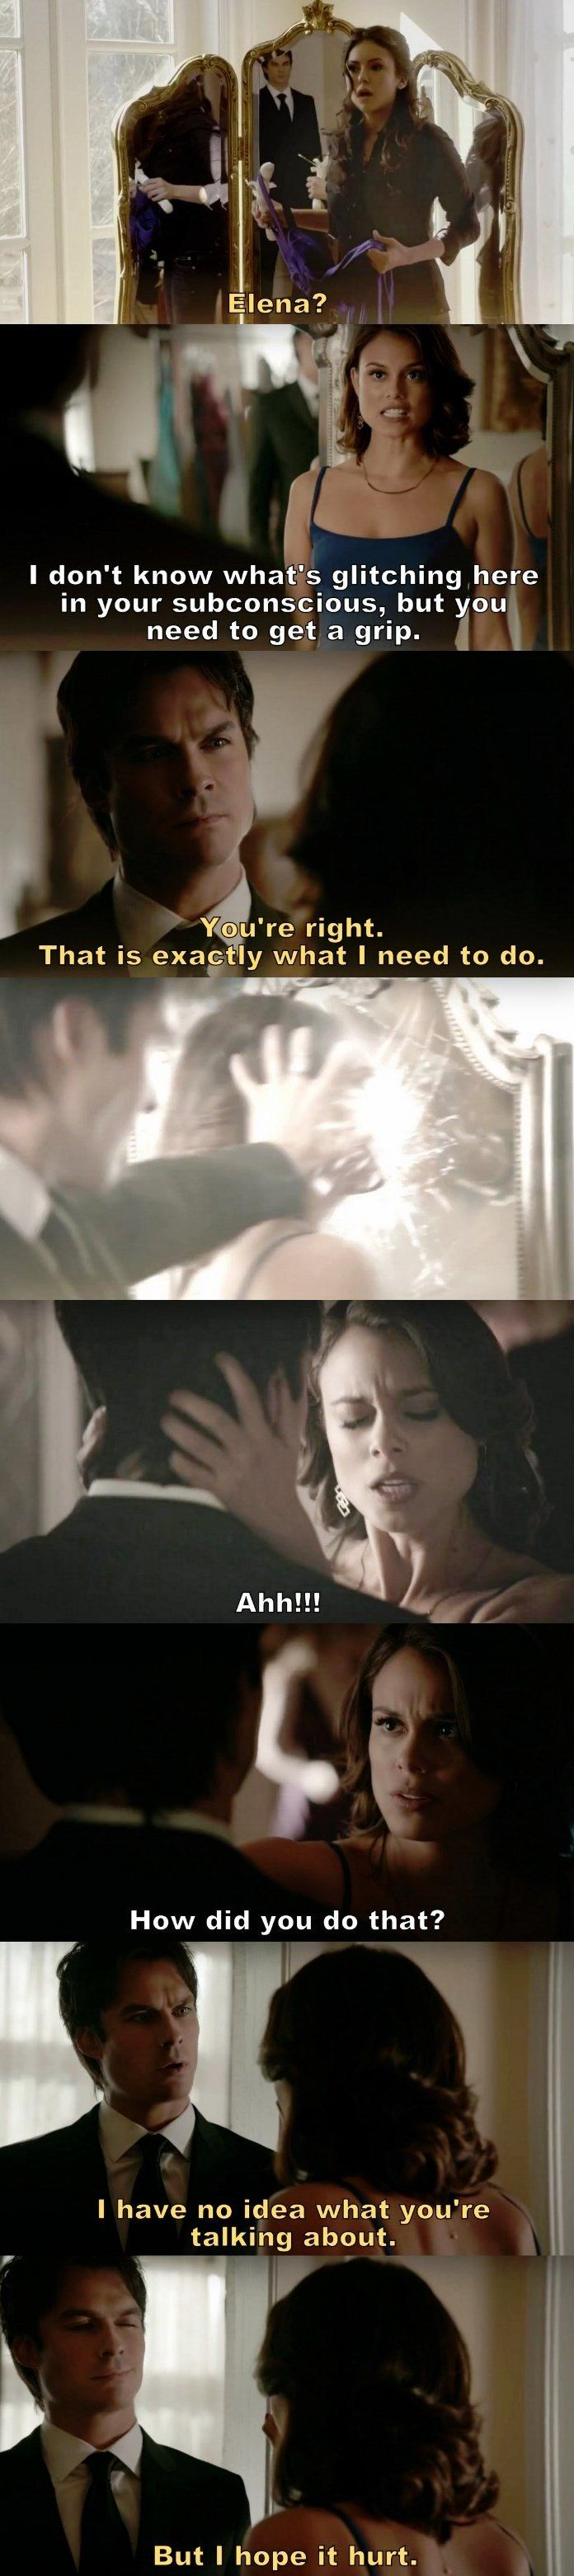 """#TVD 8x09 """"The Simple Intimacy of the Near Touch"""" I didn't watch this episode yet, but I hope Sybil is destroyed!!!"""